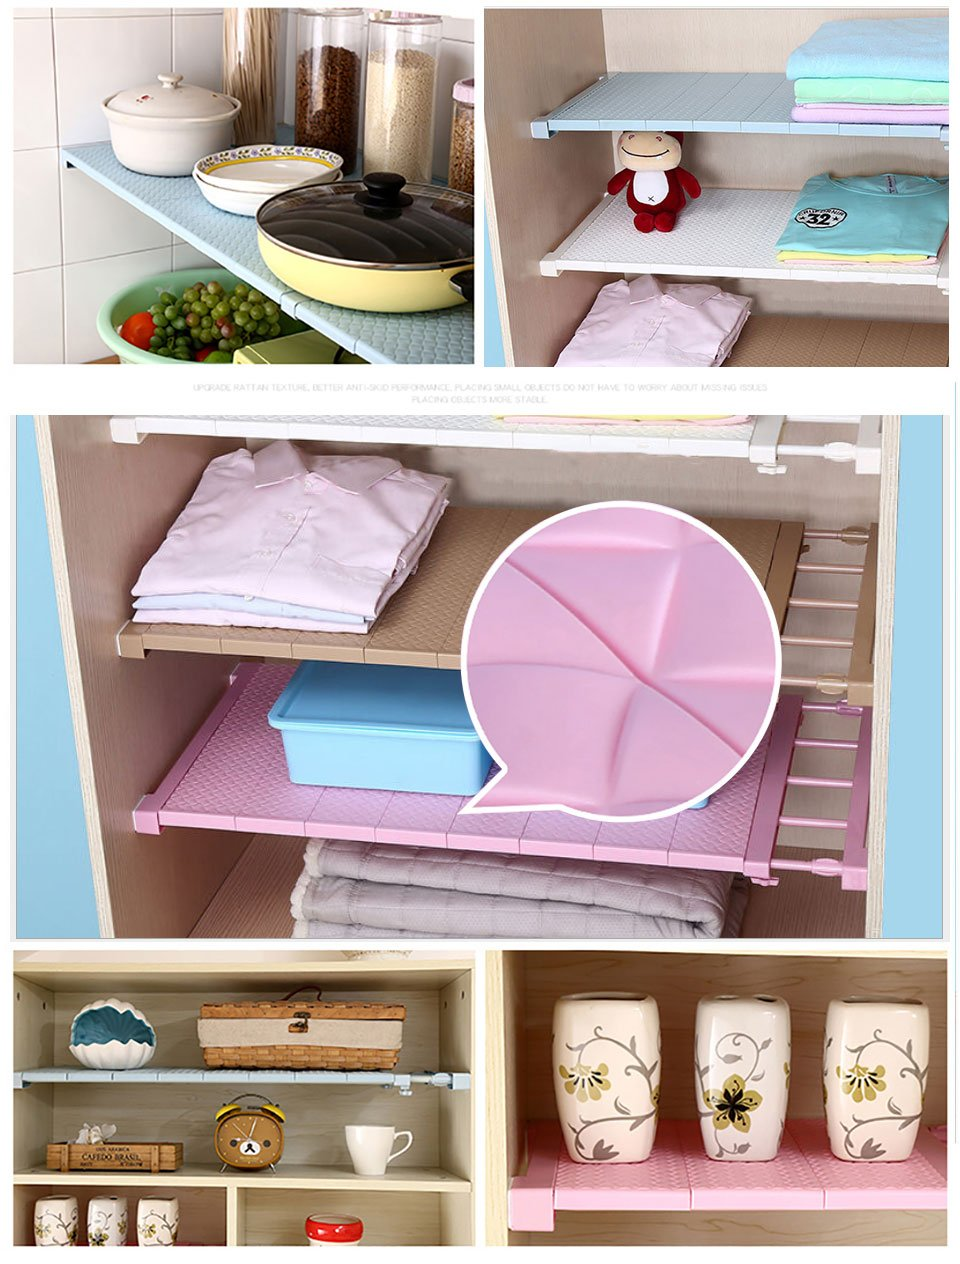 Adjustable Closet Organizer Storage Shelf- Wall Mounted Kitchen Wardrobe Space Saving Rack - Storage Holders & Racks